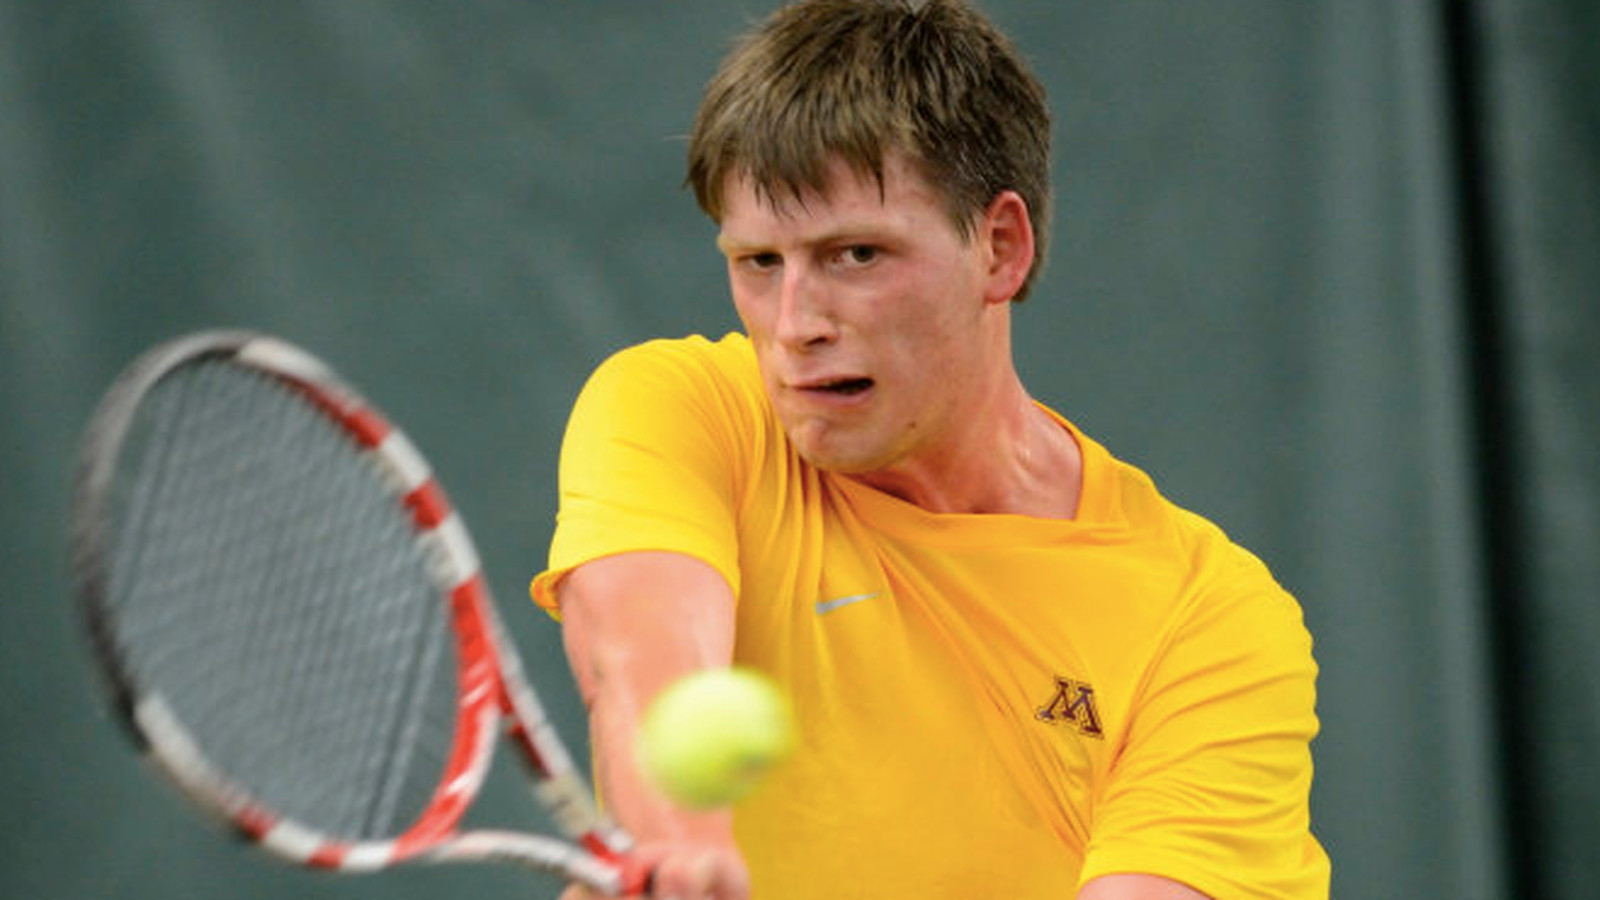 Singles in gopher or Gophers Fall Short with Only Three Wins in Singles Play - Goucher College Athletics